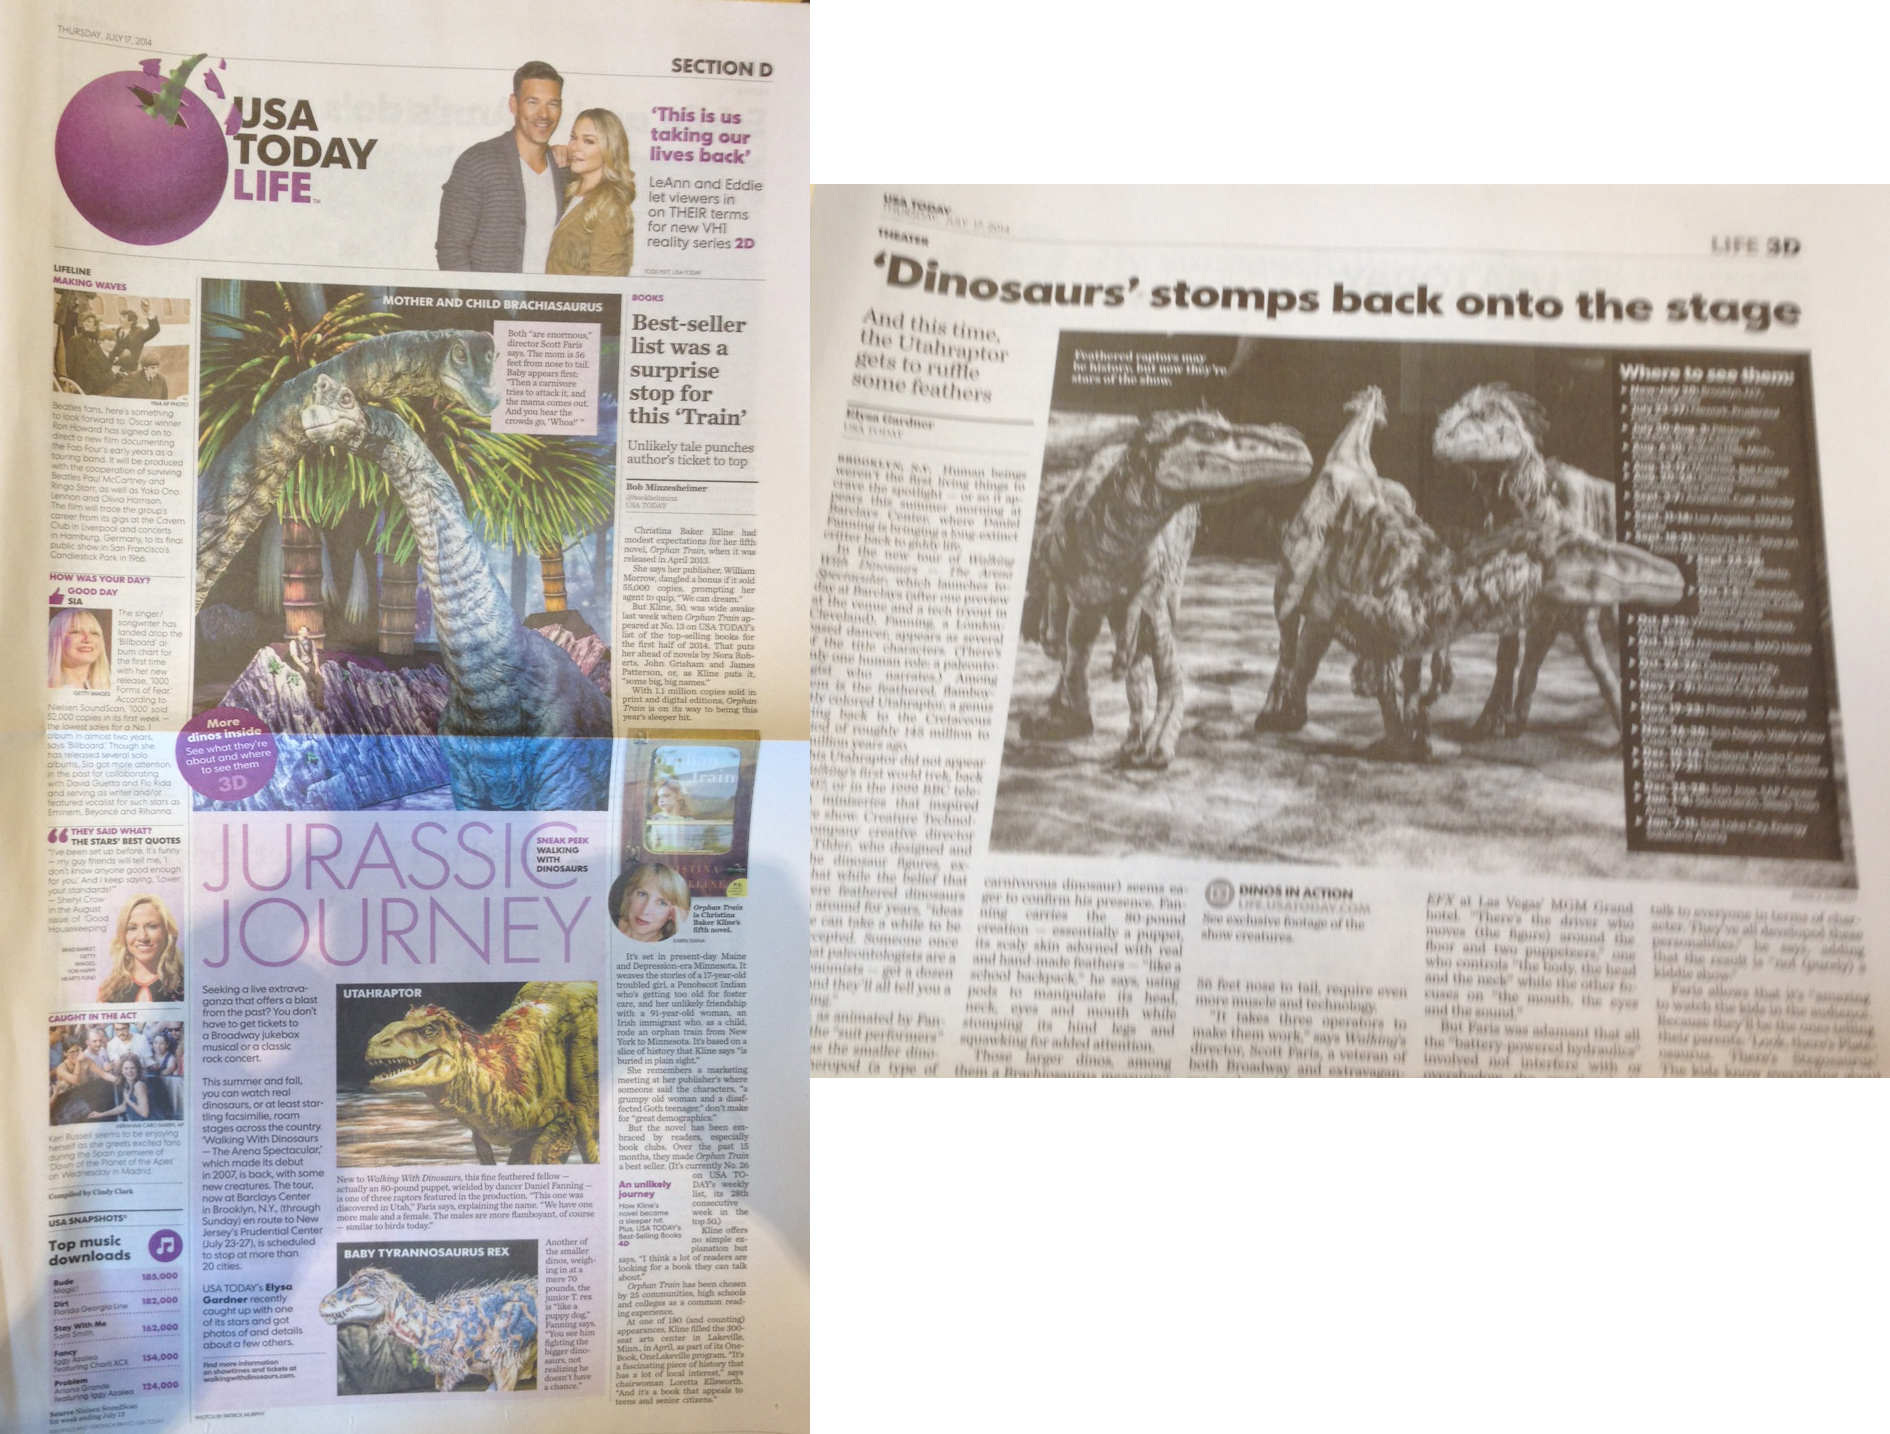 Walking With Dinosaurs-USA Today (Front Page of Life Section)